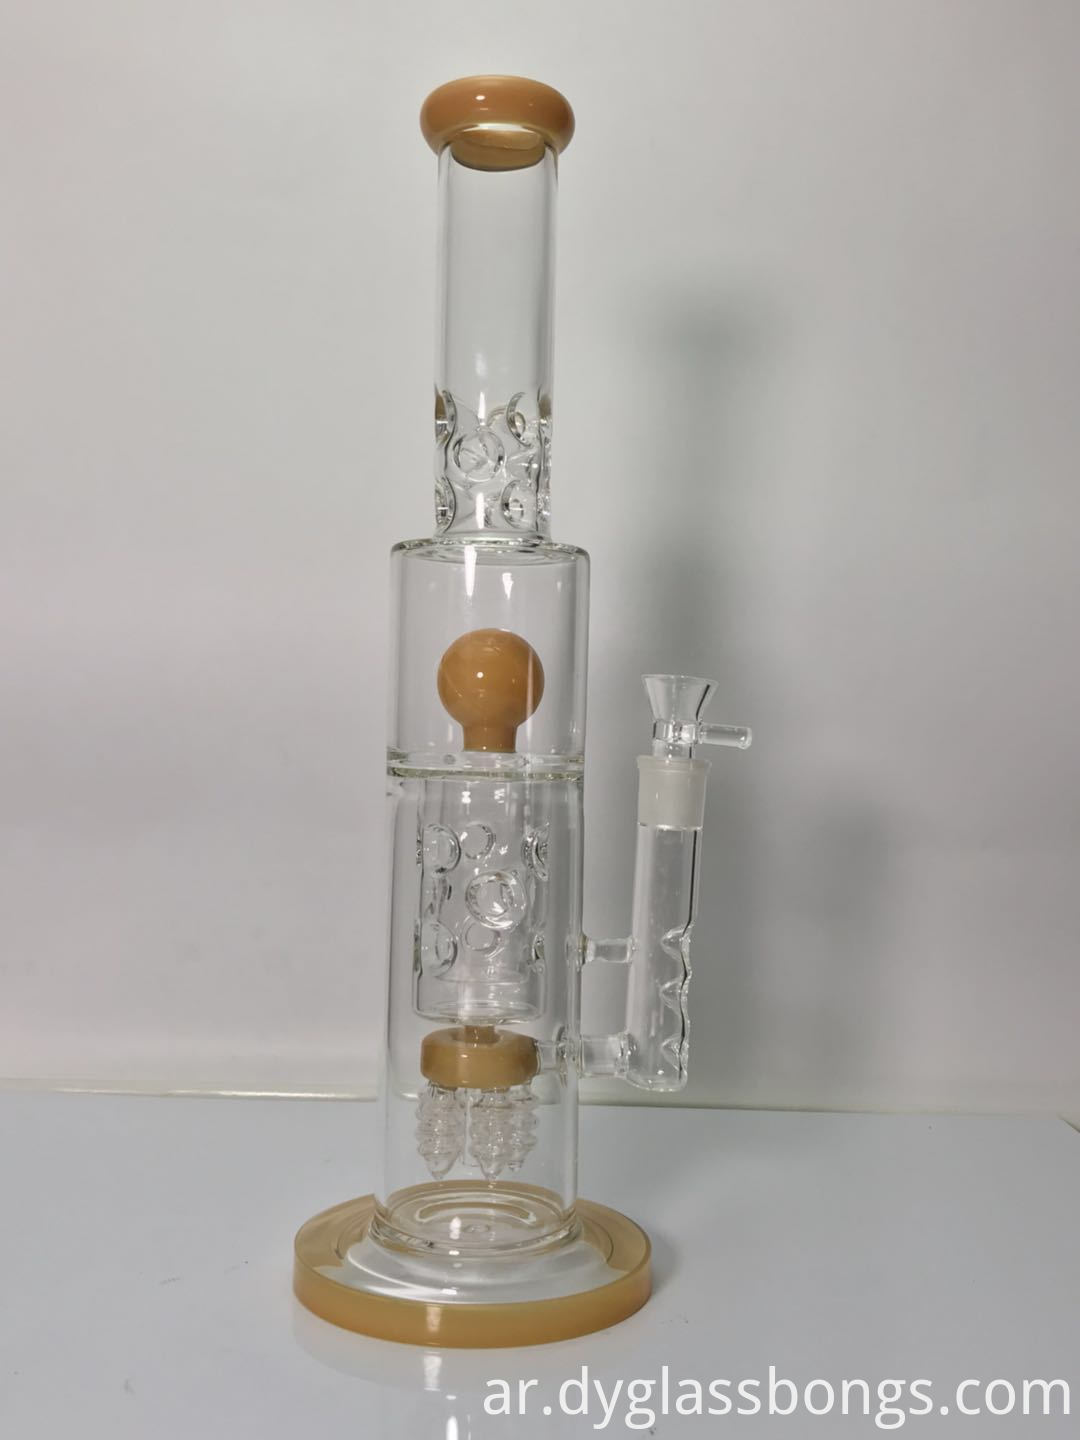 Two layer bird's nest recycler glass bongs